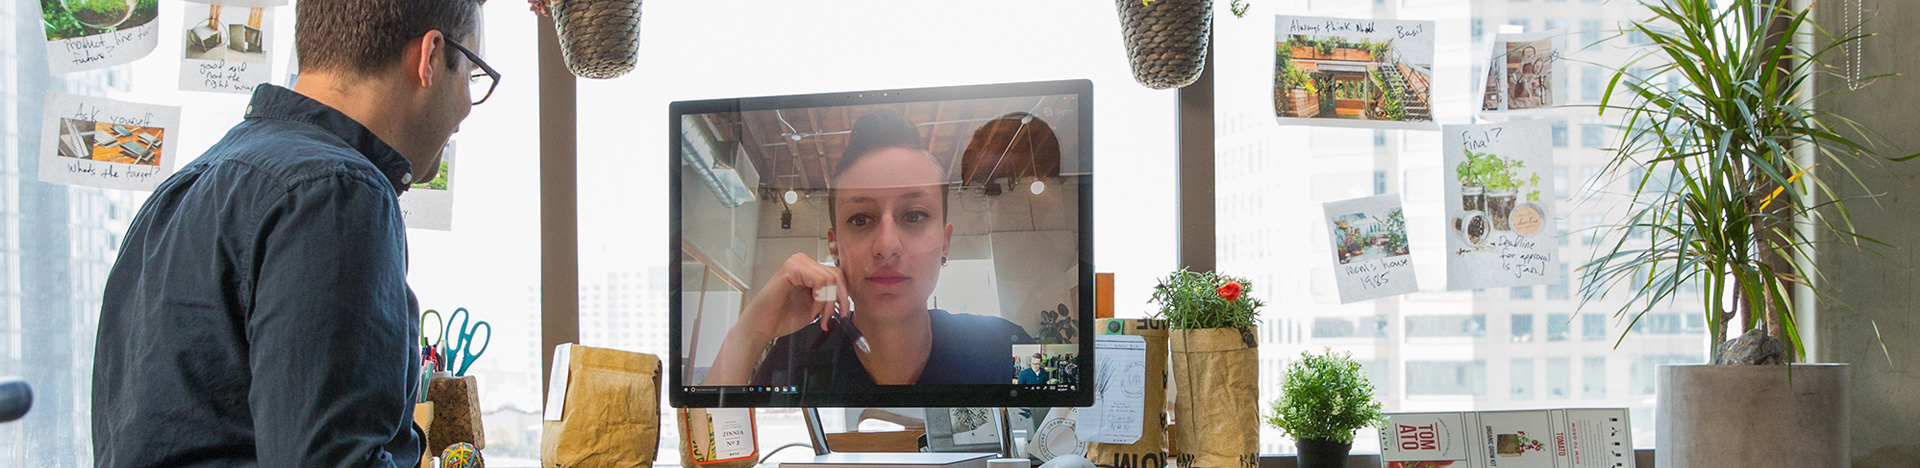 Two people in a videoconference